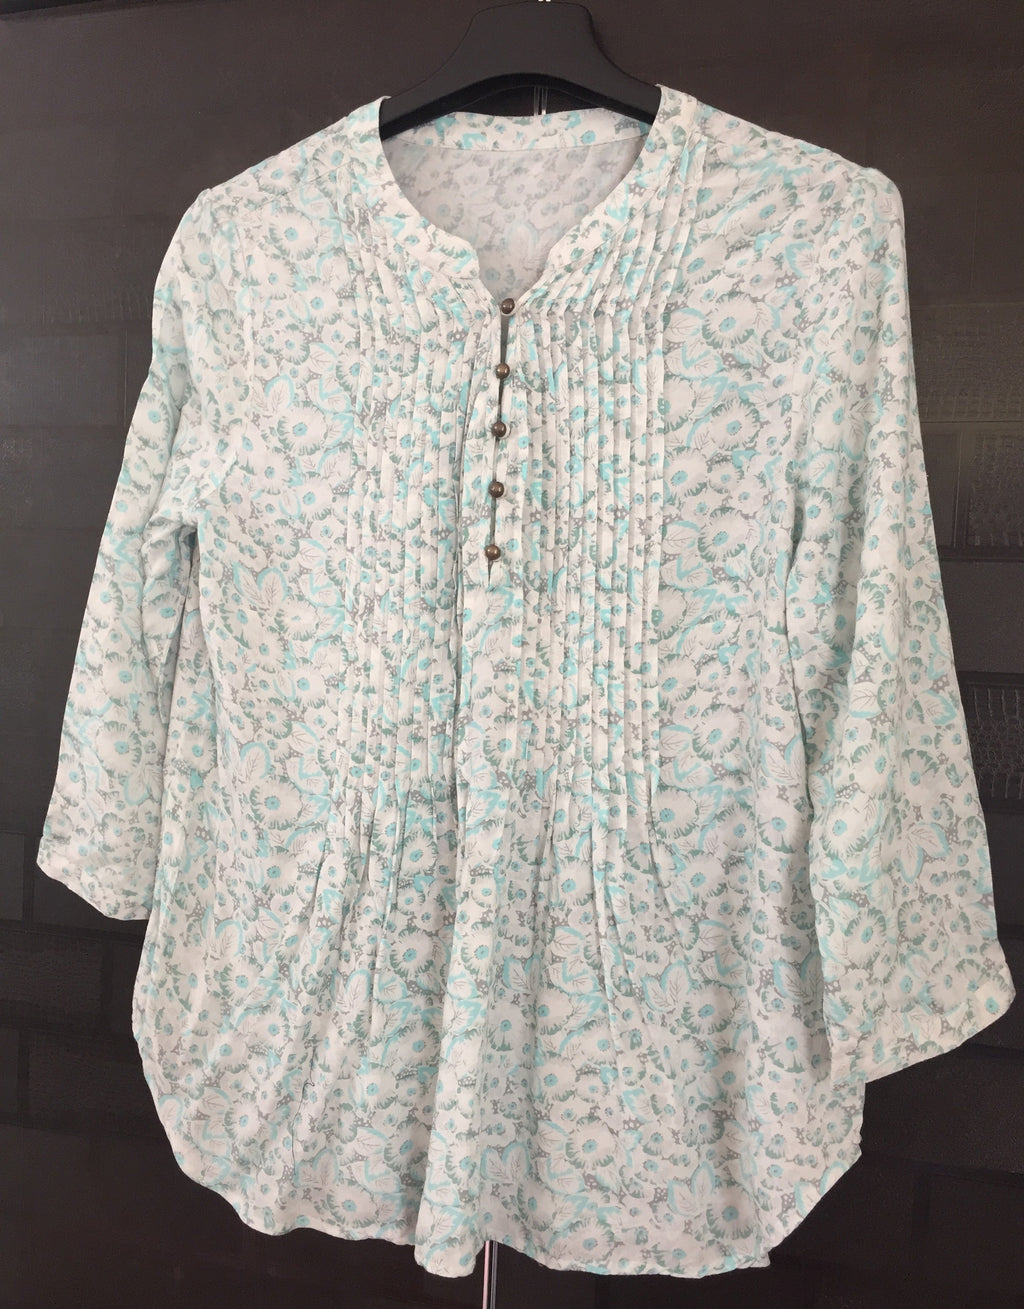 Lightest Green, Floral Printed Top